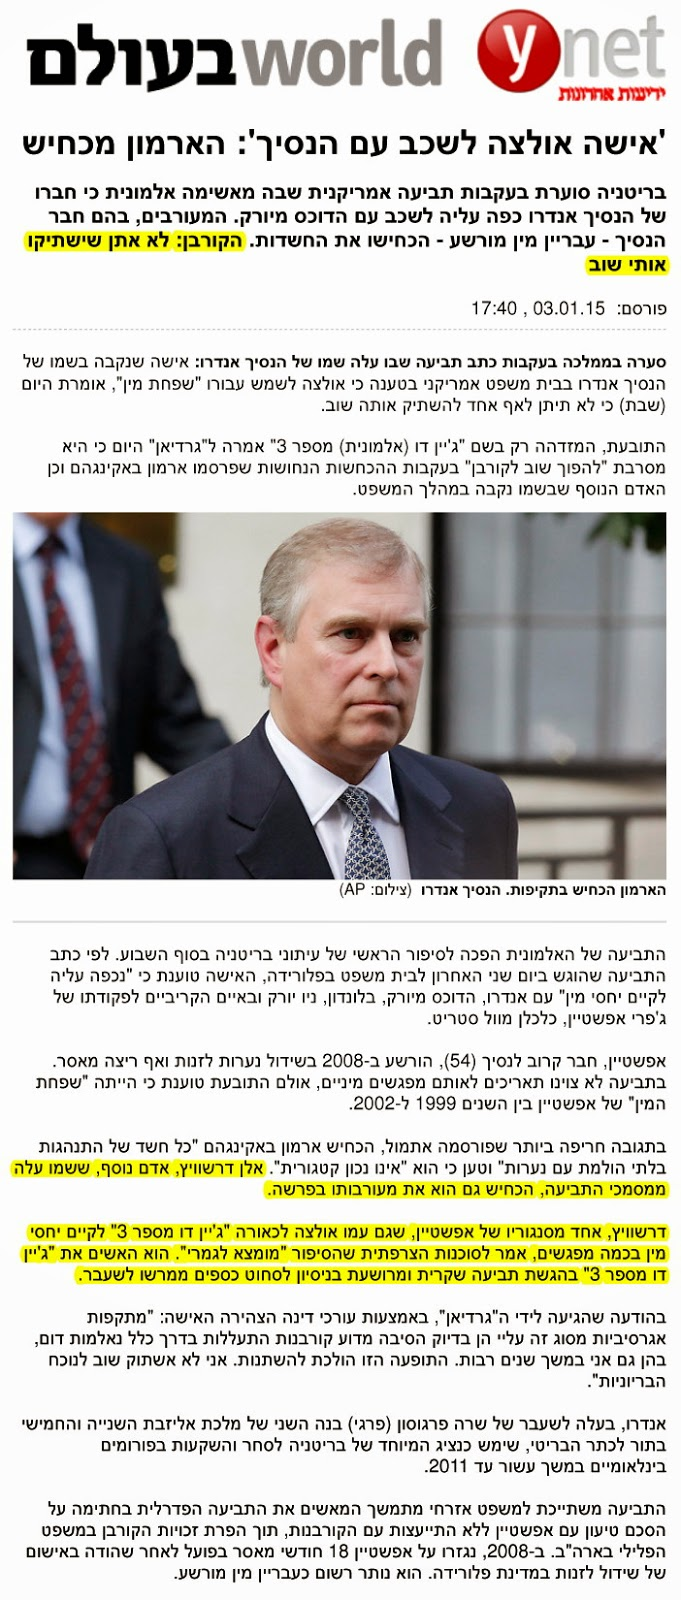 http://www.ynet.co.il/articles/0,7340,L-4610823,00.html